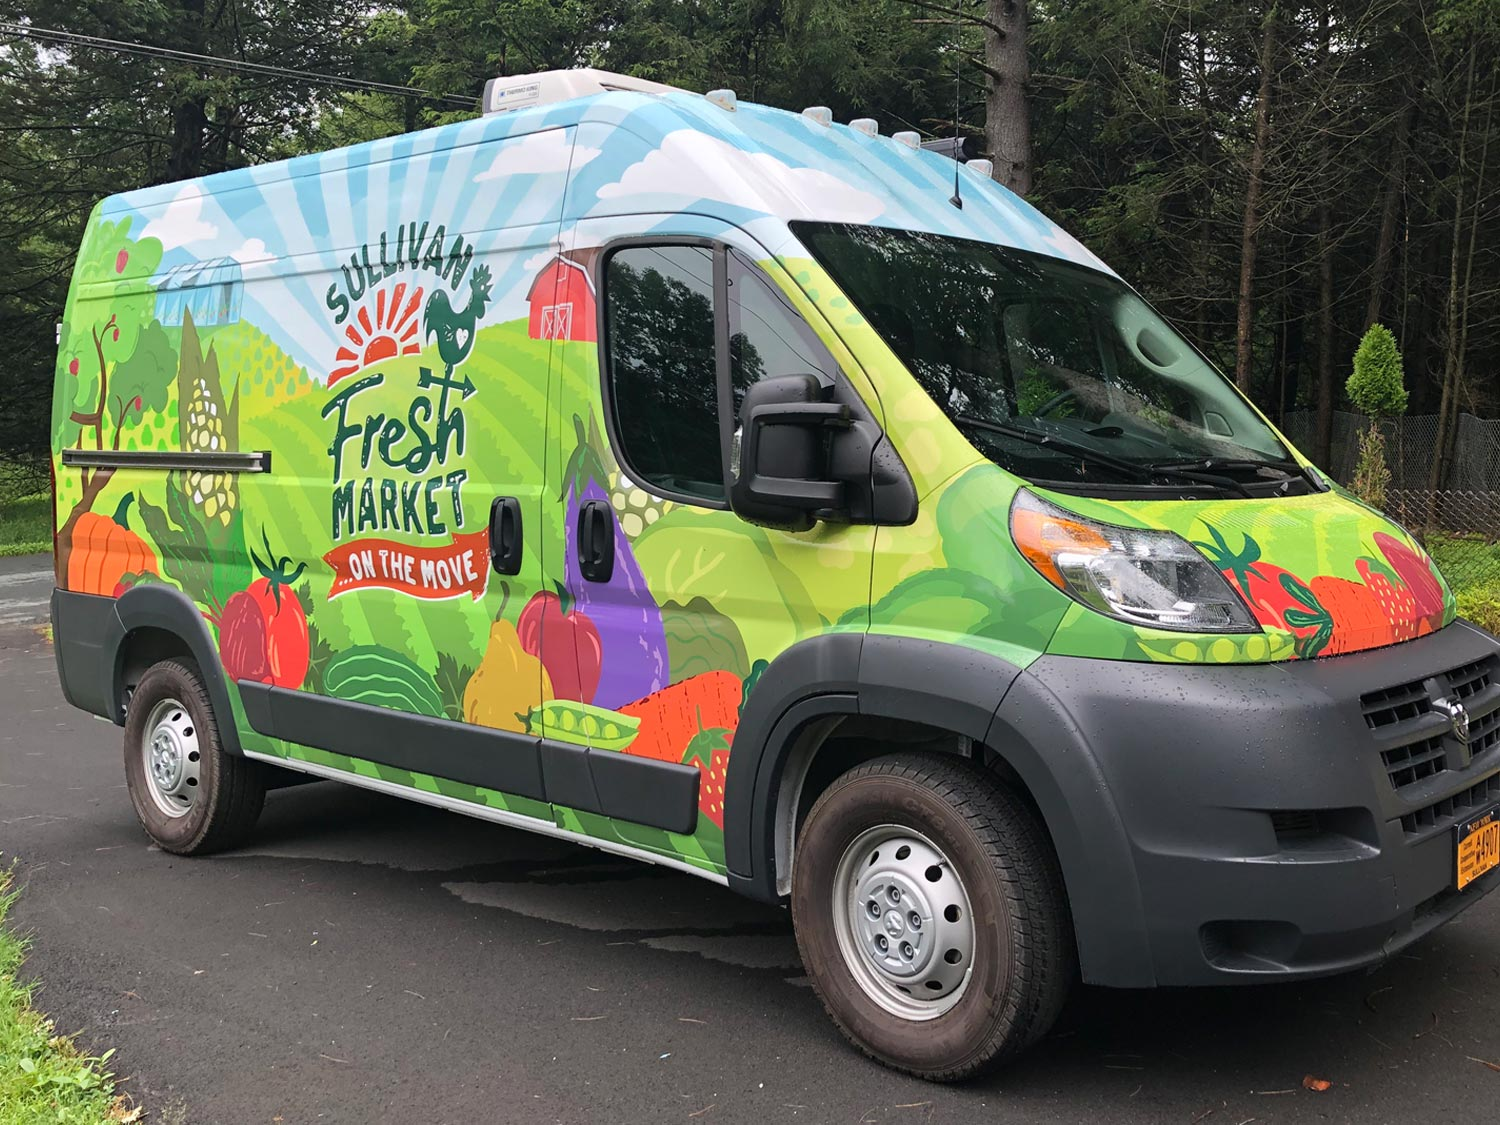 Mobile market in an insulated van